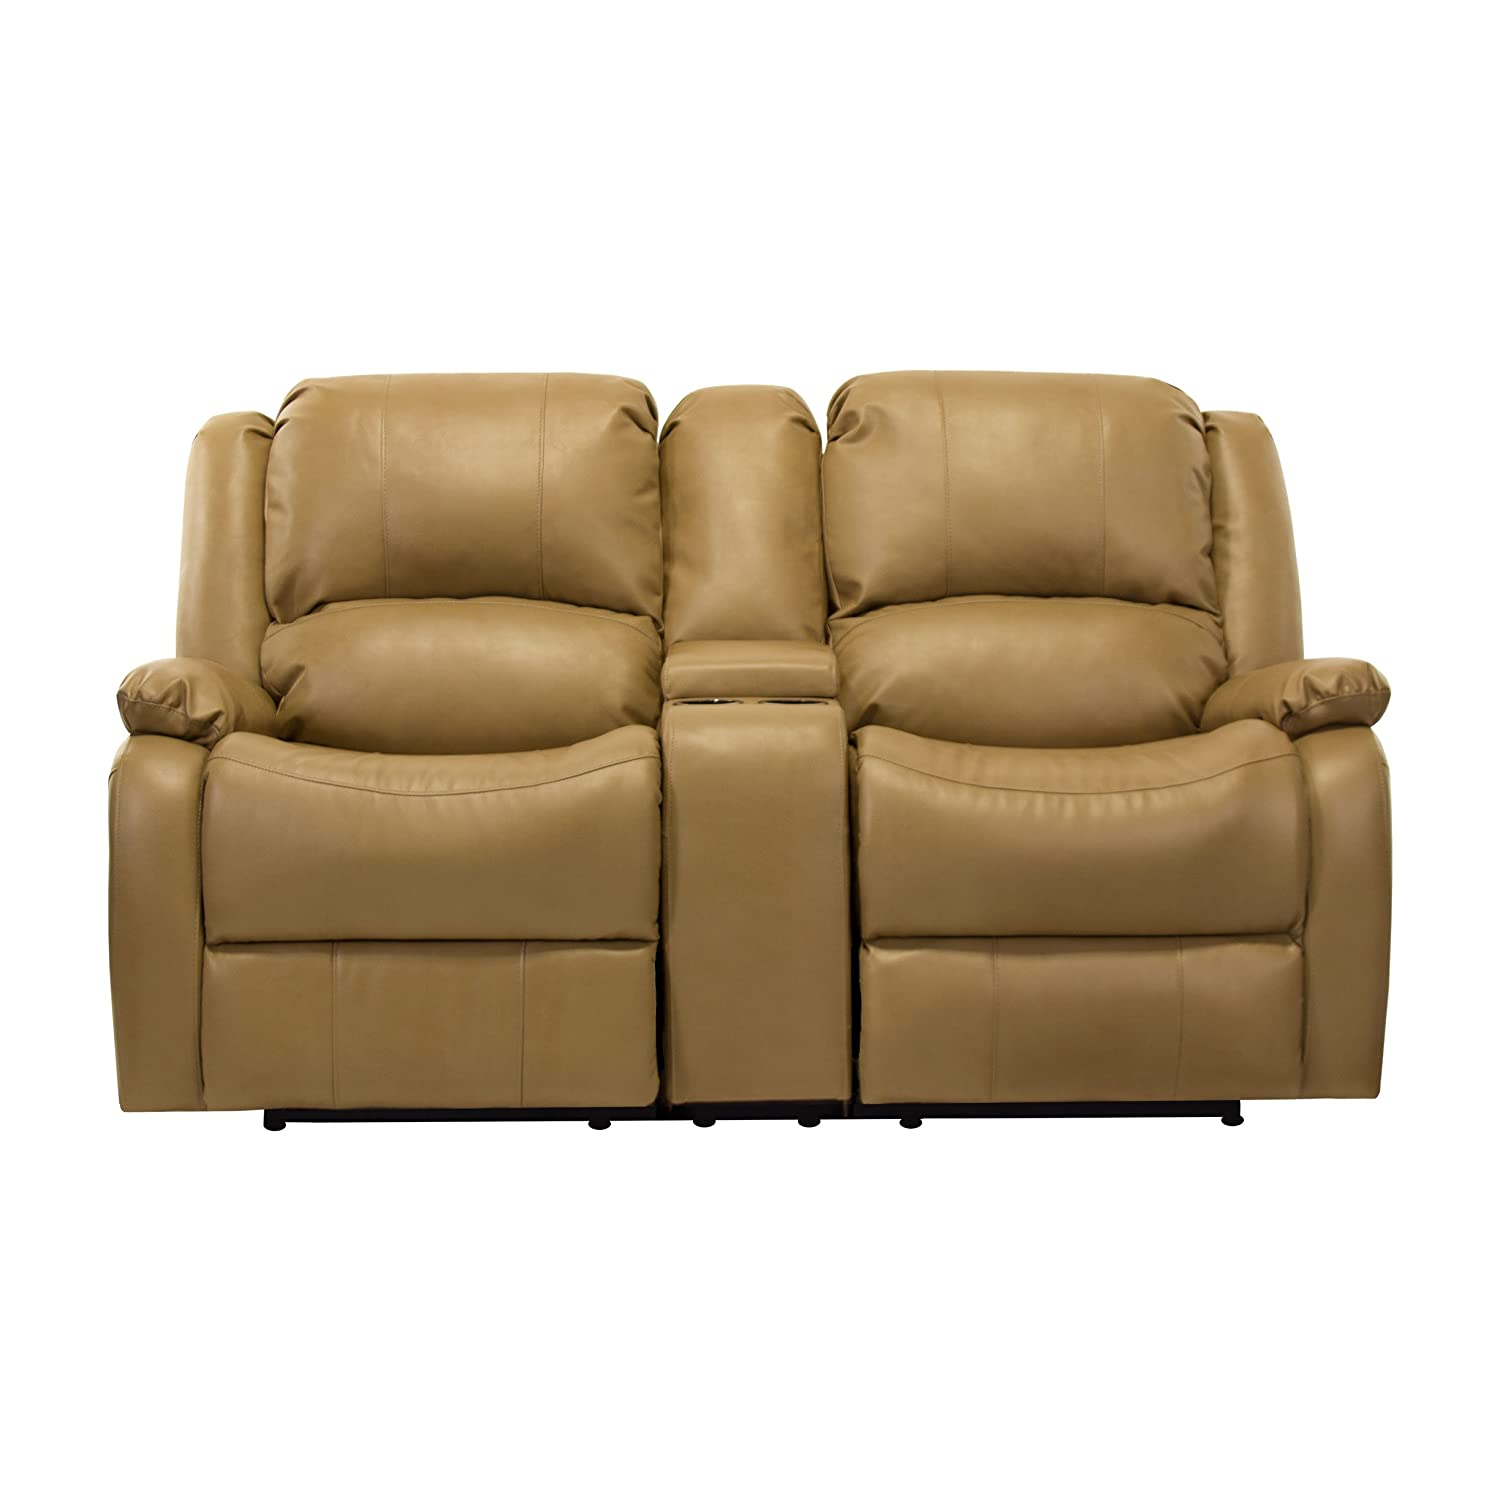 recliner compare air double gordon master loveseat leather on motion prices search gosale com